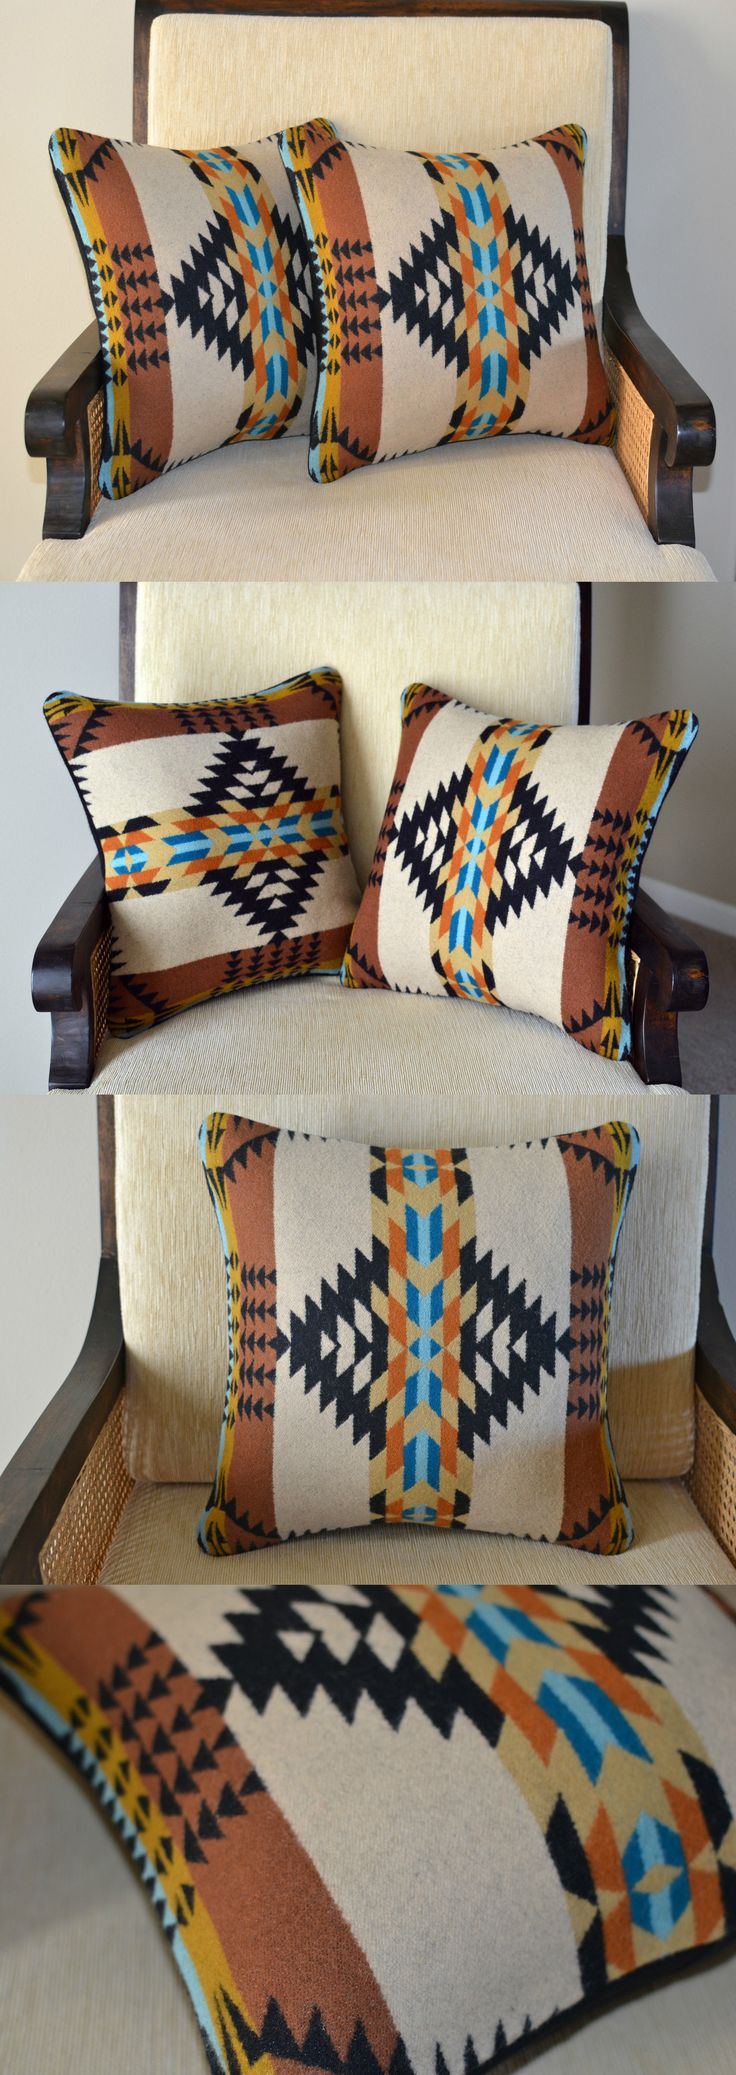 Pillows 20563: Pillow Covers Shams Southwestern Home Decor Handcrafted Of Pendleton Wool Fabric -> BUY IT NOW ONLY: $88 on eBay!